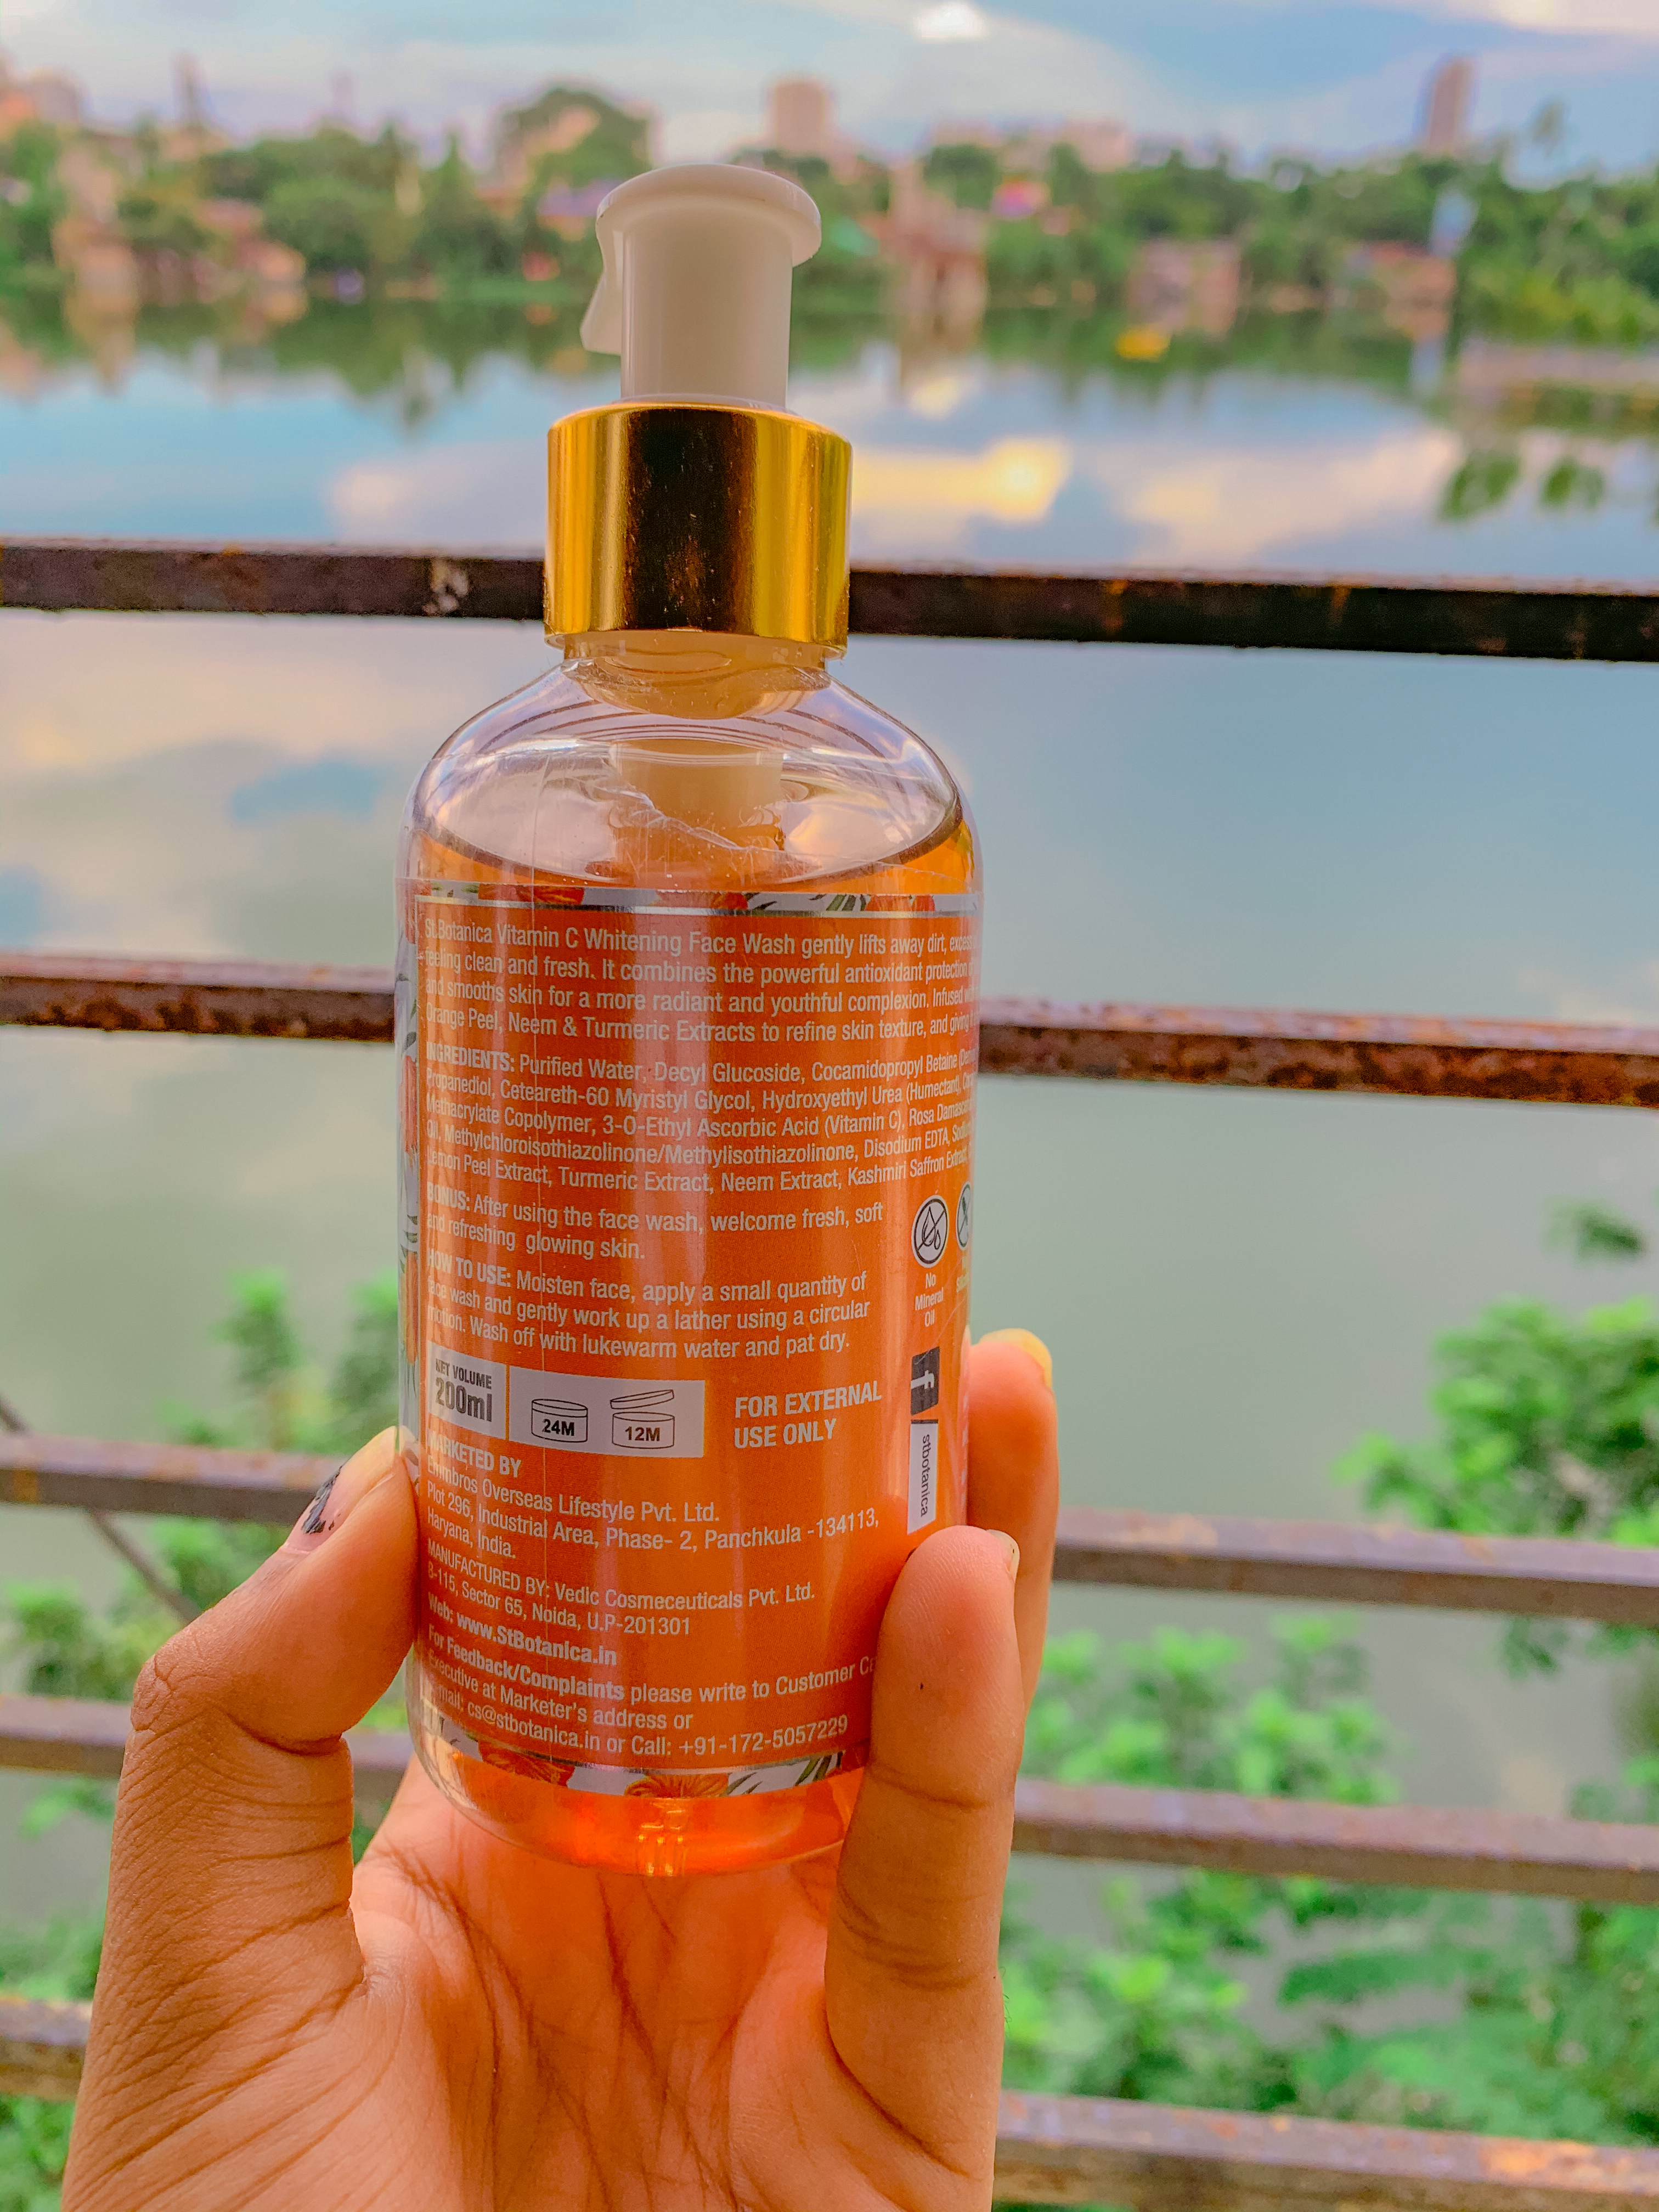 St.Botanica Vitamin C Face Wash -A good cleanser to keep .-By arunikakoley